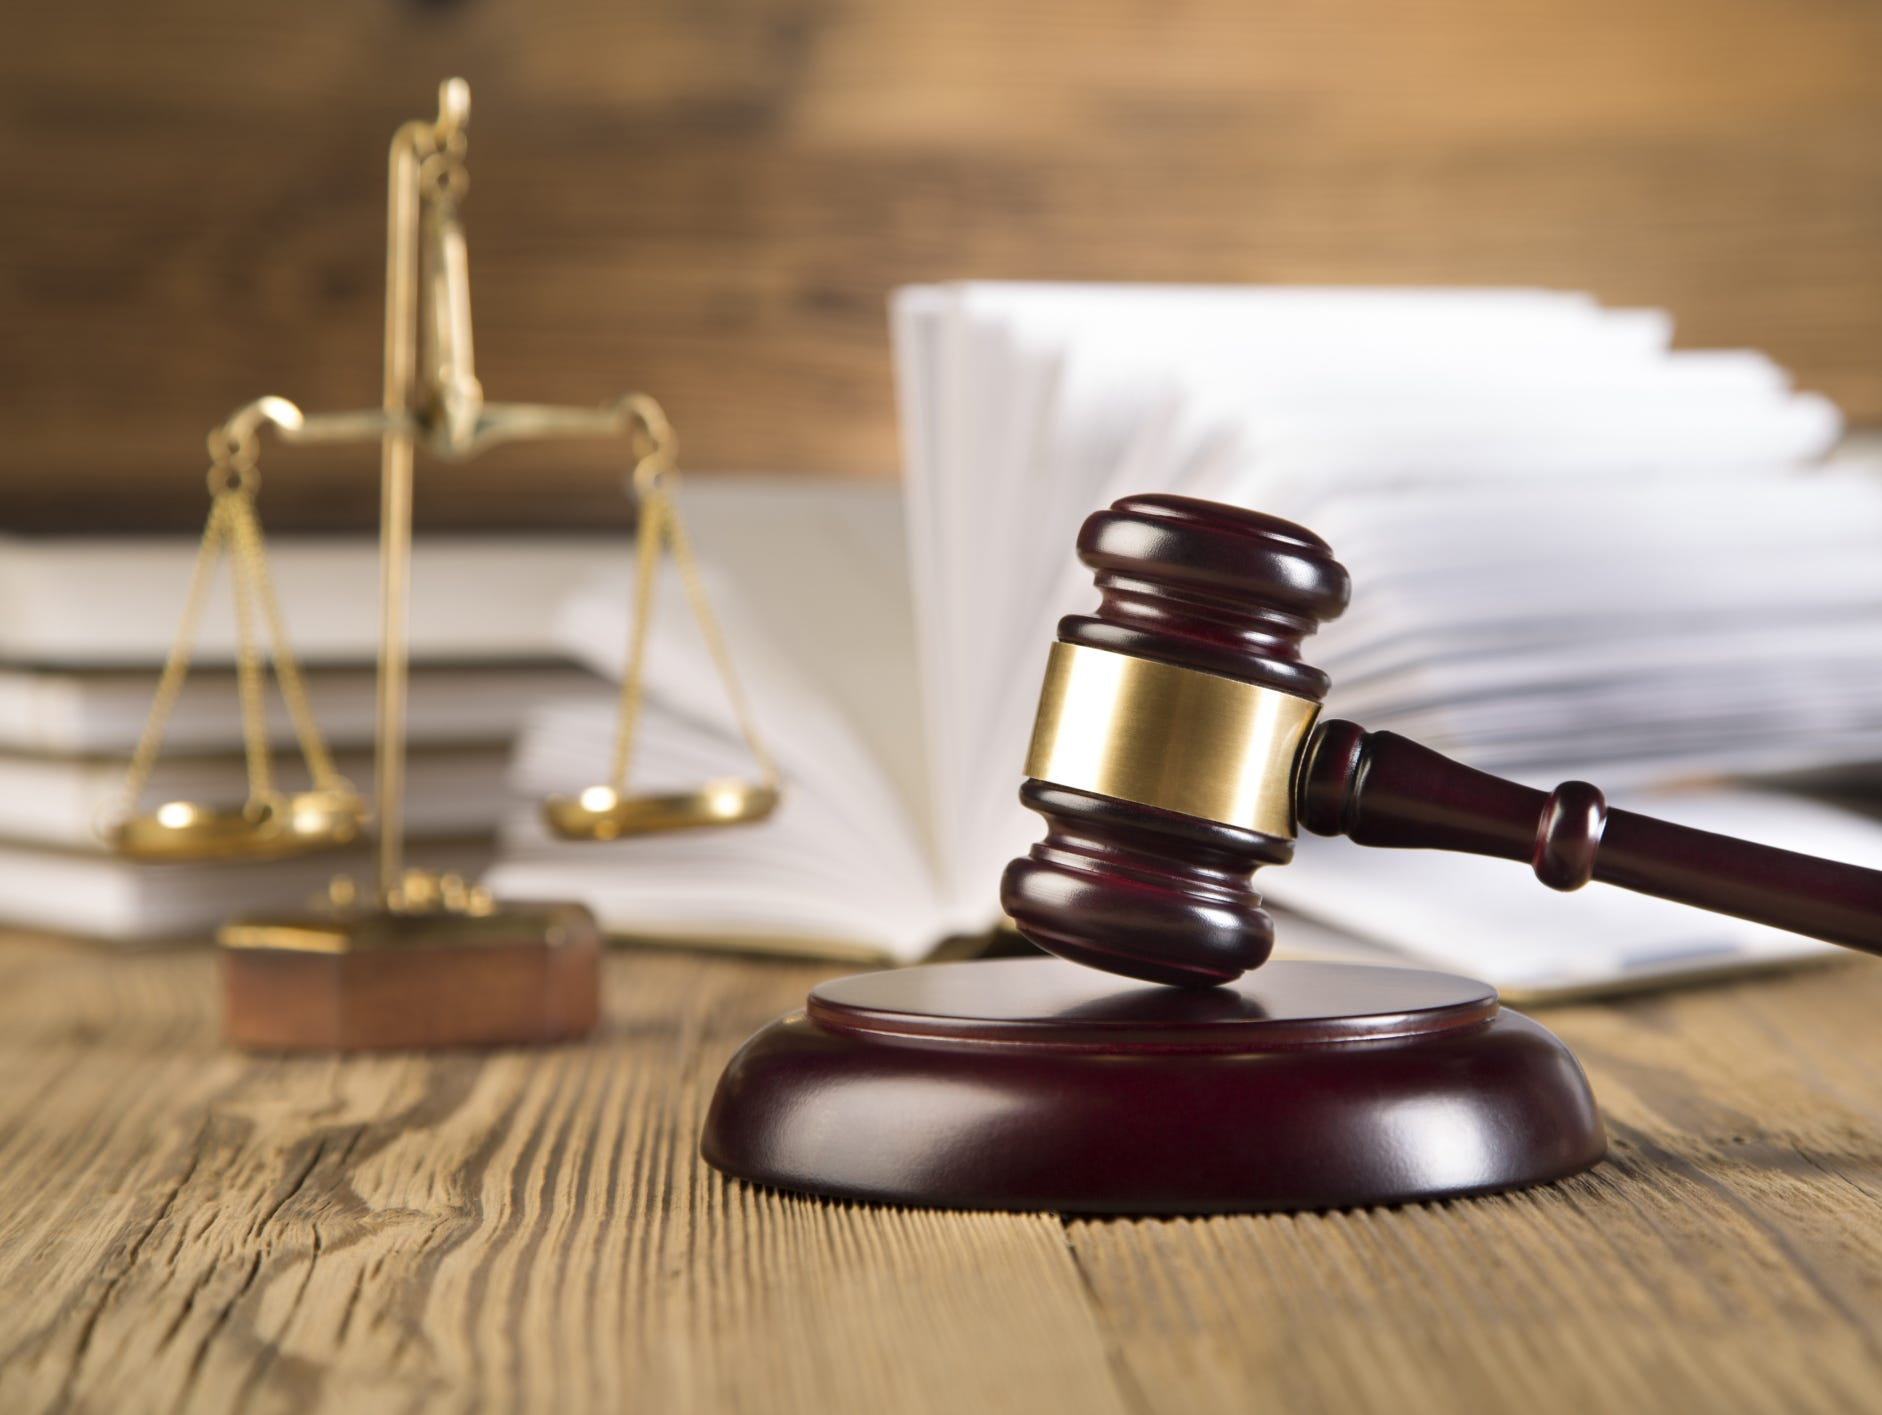 Scales of justice, gavel and books,